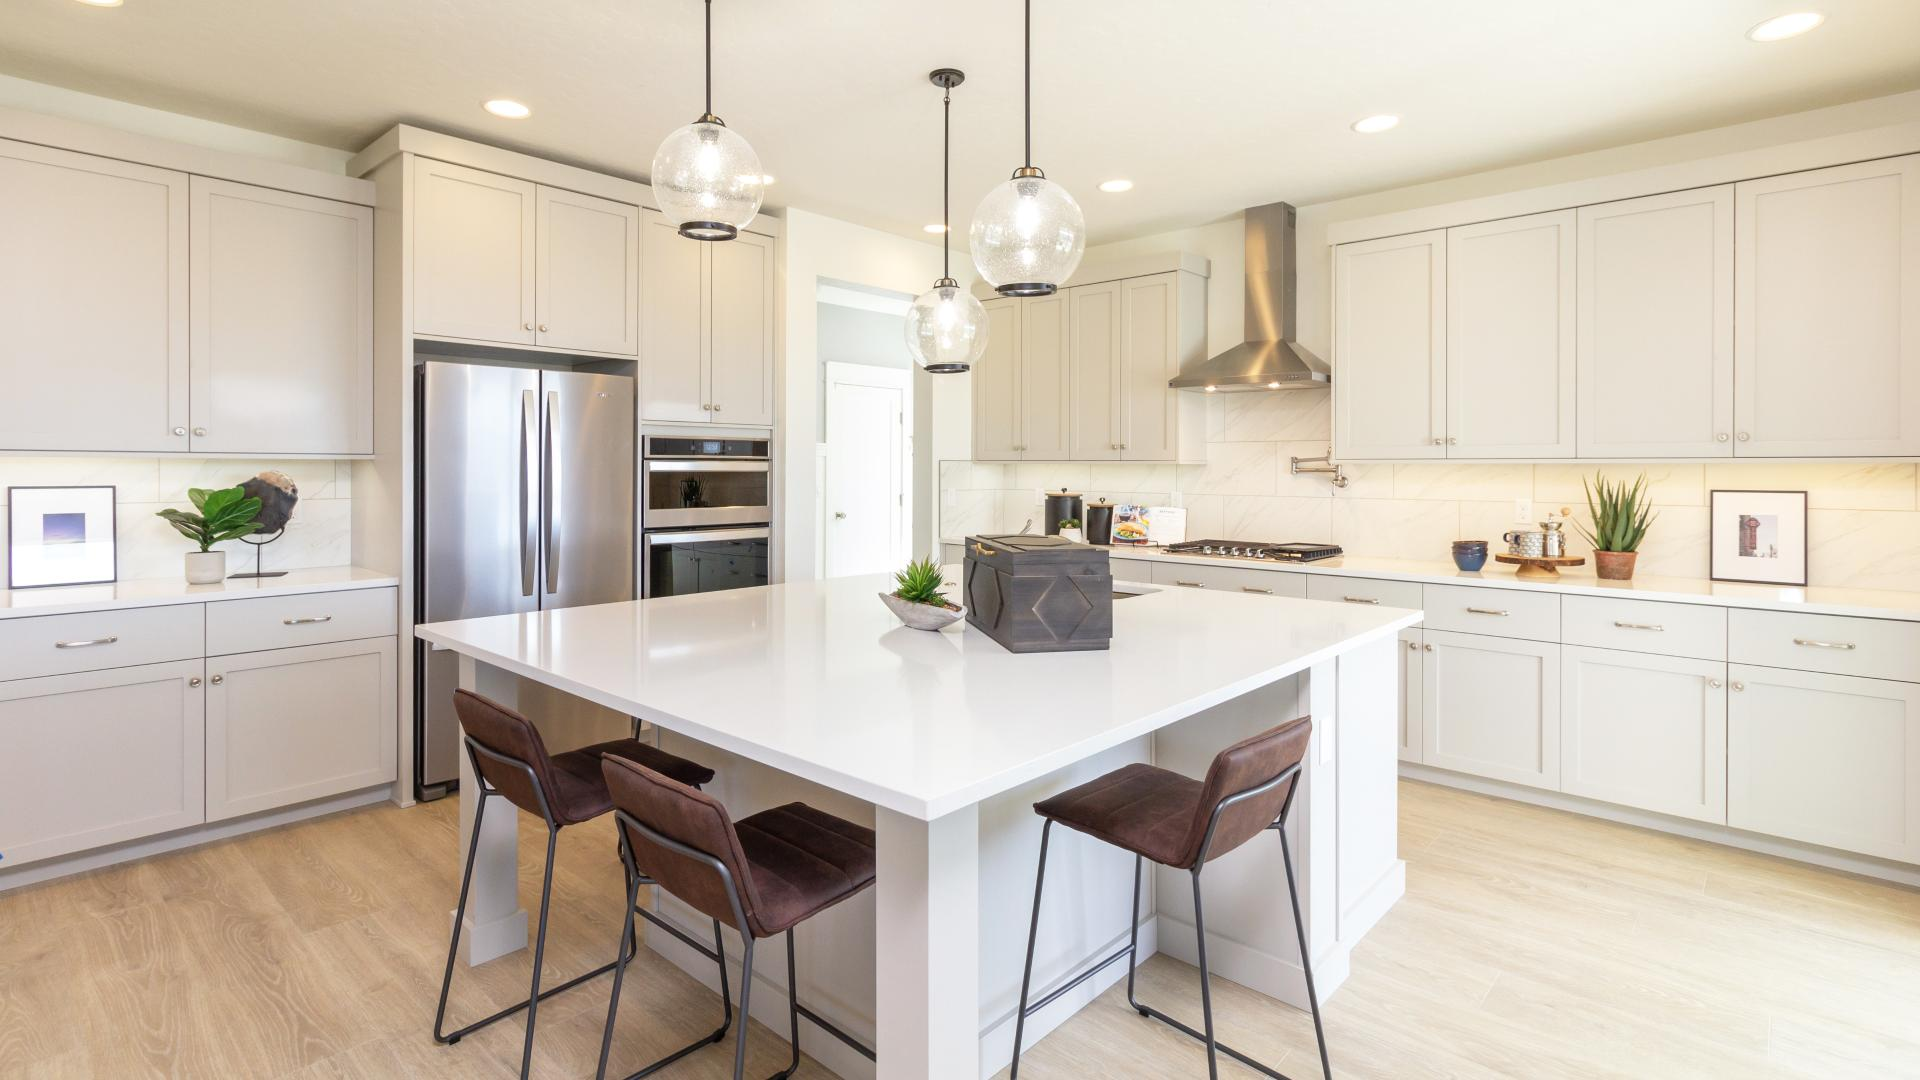 Spacious kitchen with dual oven, gas cooktop and pot filler for convenience